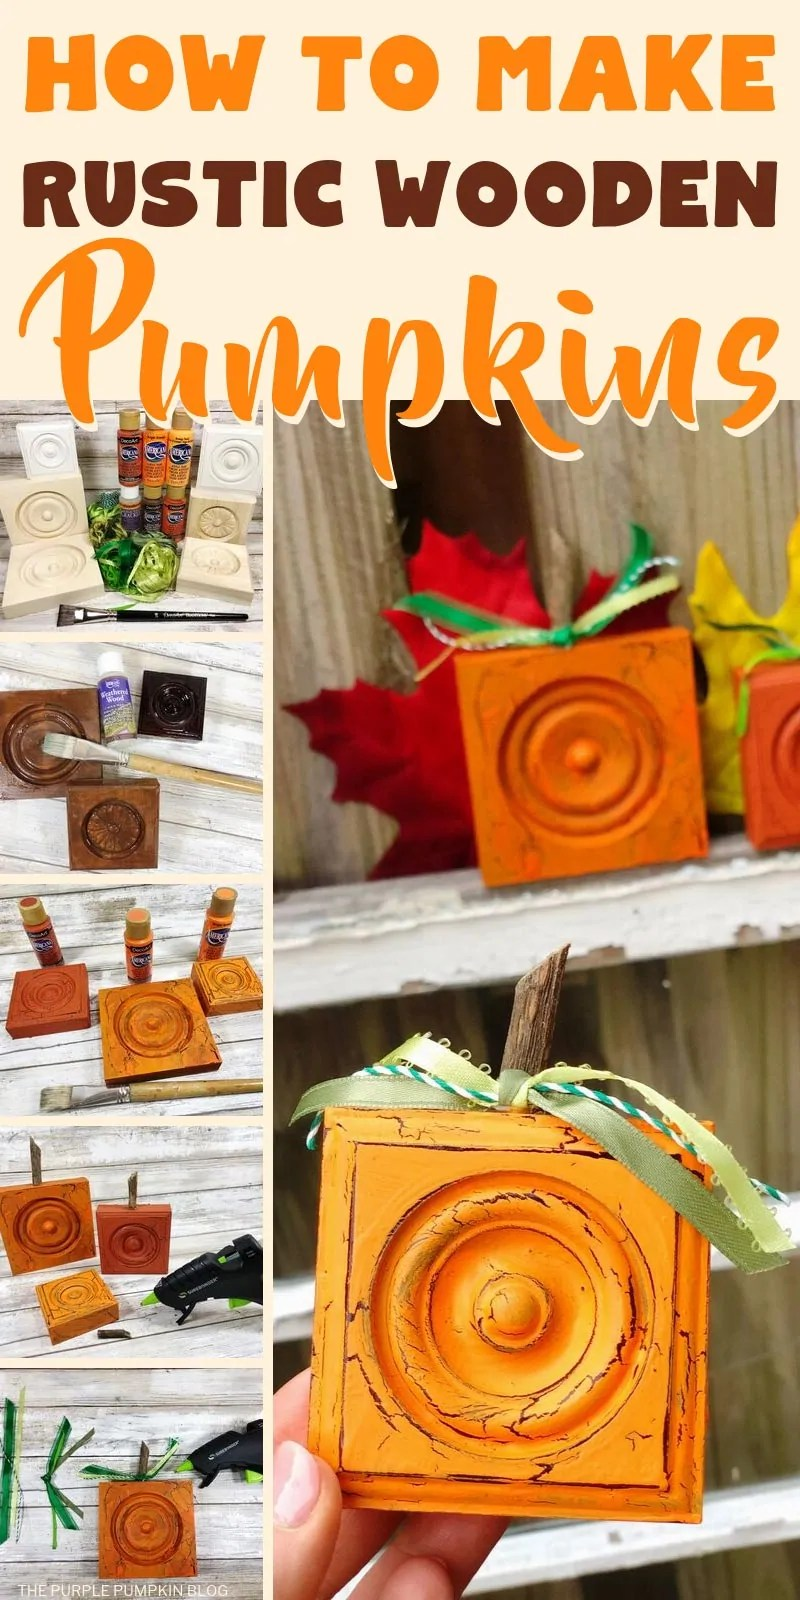 How to make Rustic Wooden Pumpkins